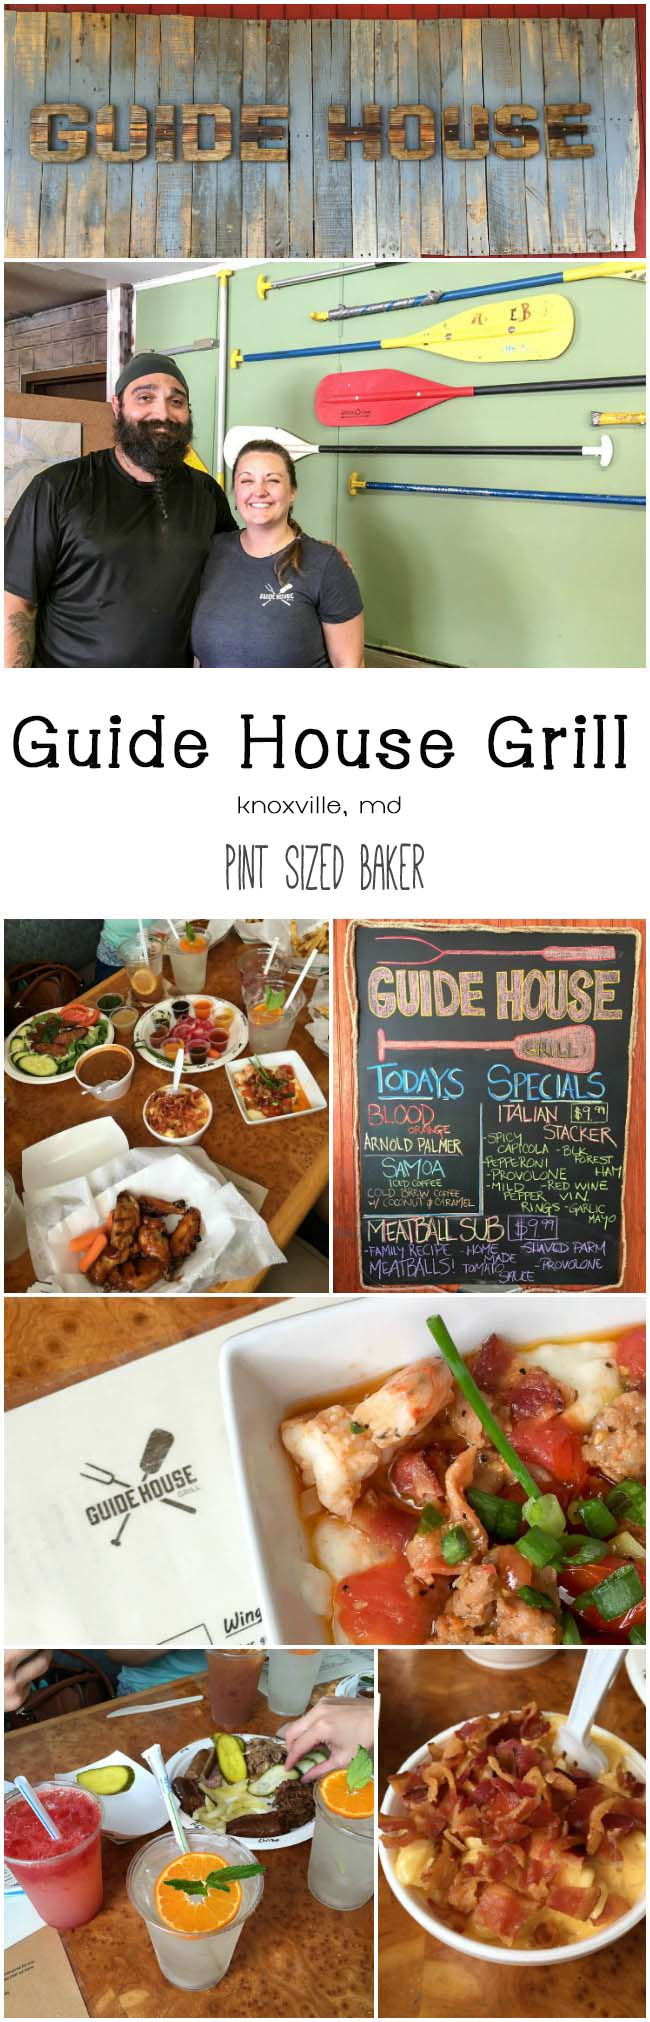 Great BBQ, burgers, mac n' cheese and amzing, hand squeezed lemonade at the Guide House Grill. Great Food - Great People!